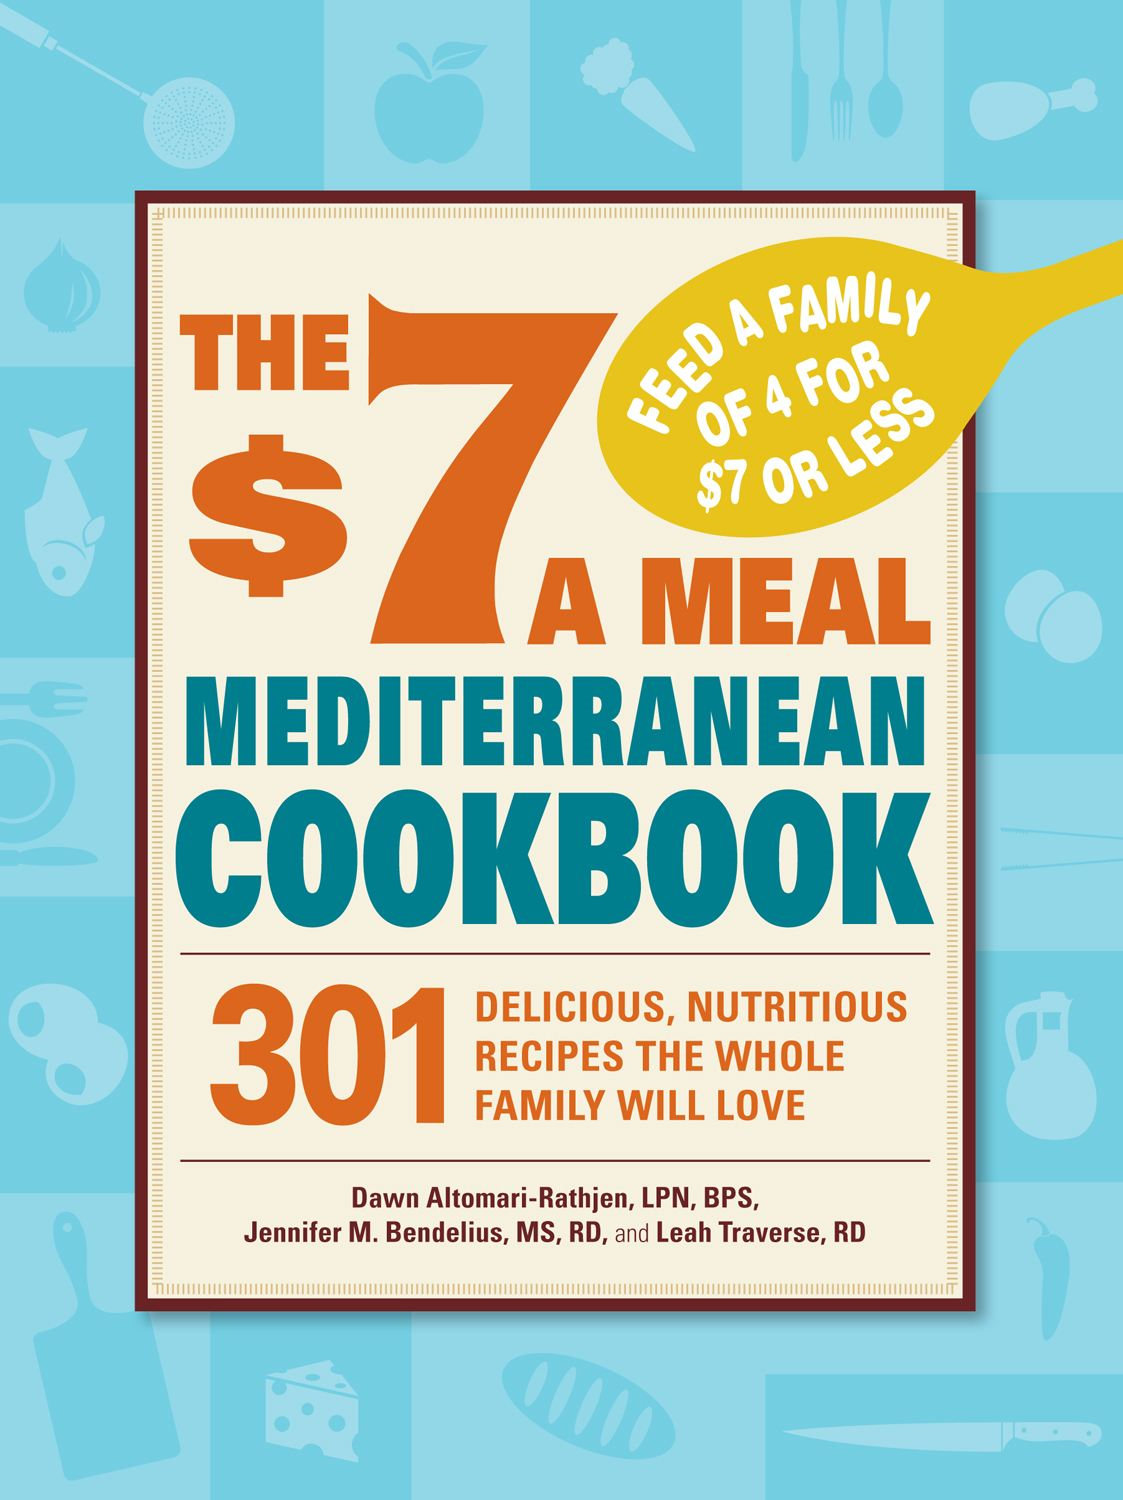 The $7 a Meal Mediterranean Cookbook: 301 Delicious, Nutritious Recipes the Whole Family Will Love By: Altomari-Rathjen,Jennifer M. Bendelius